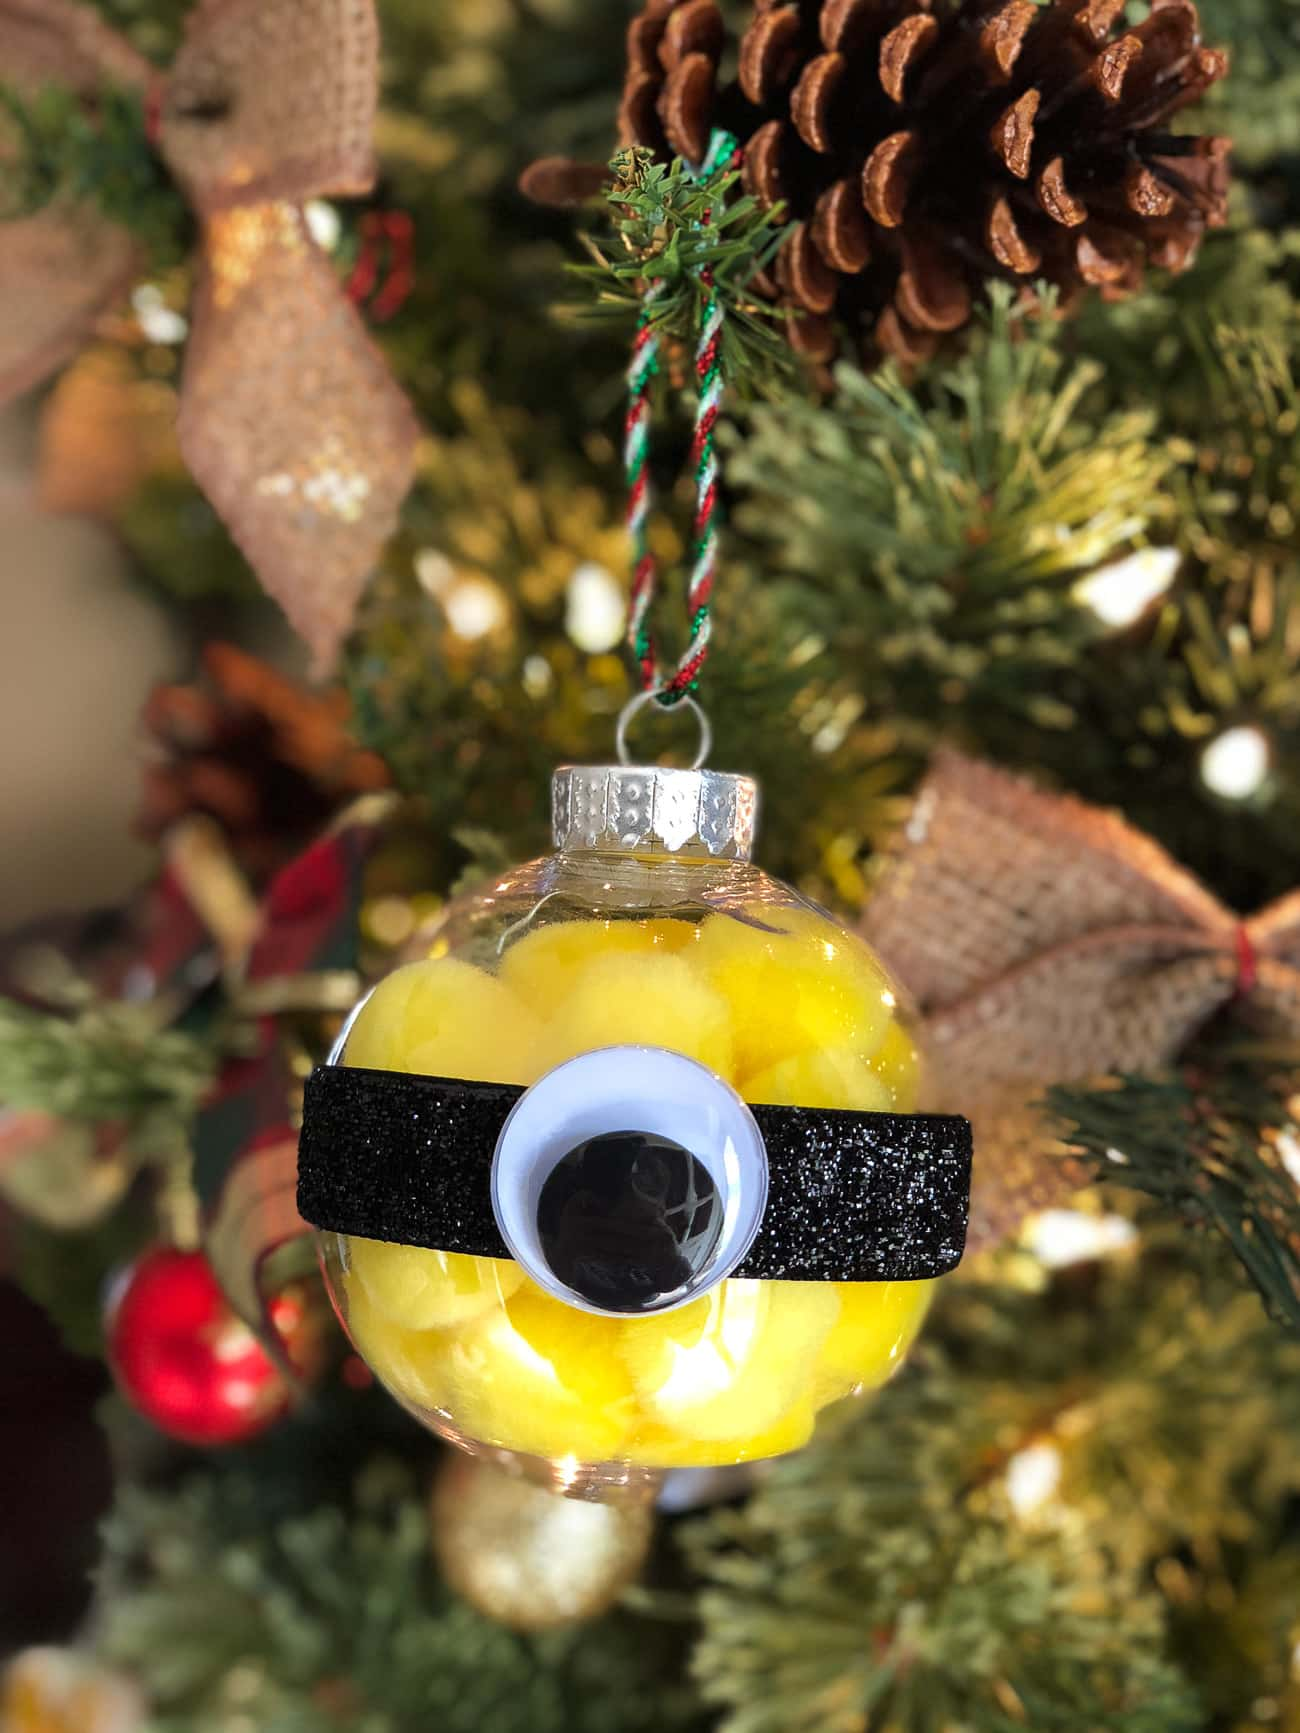 DIY Minions Ornament - Easy Minions Christmas Ornament Craft